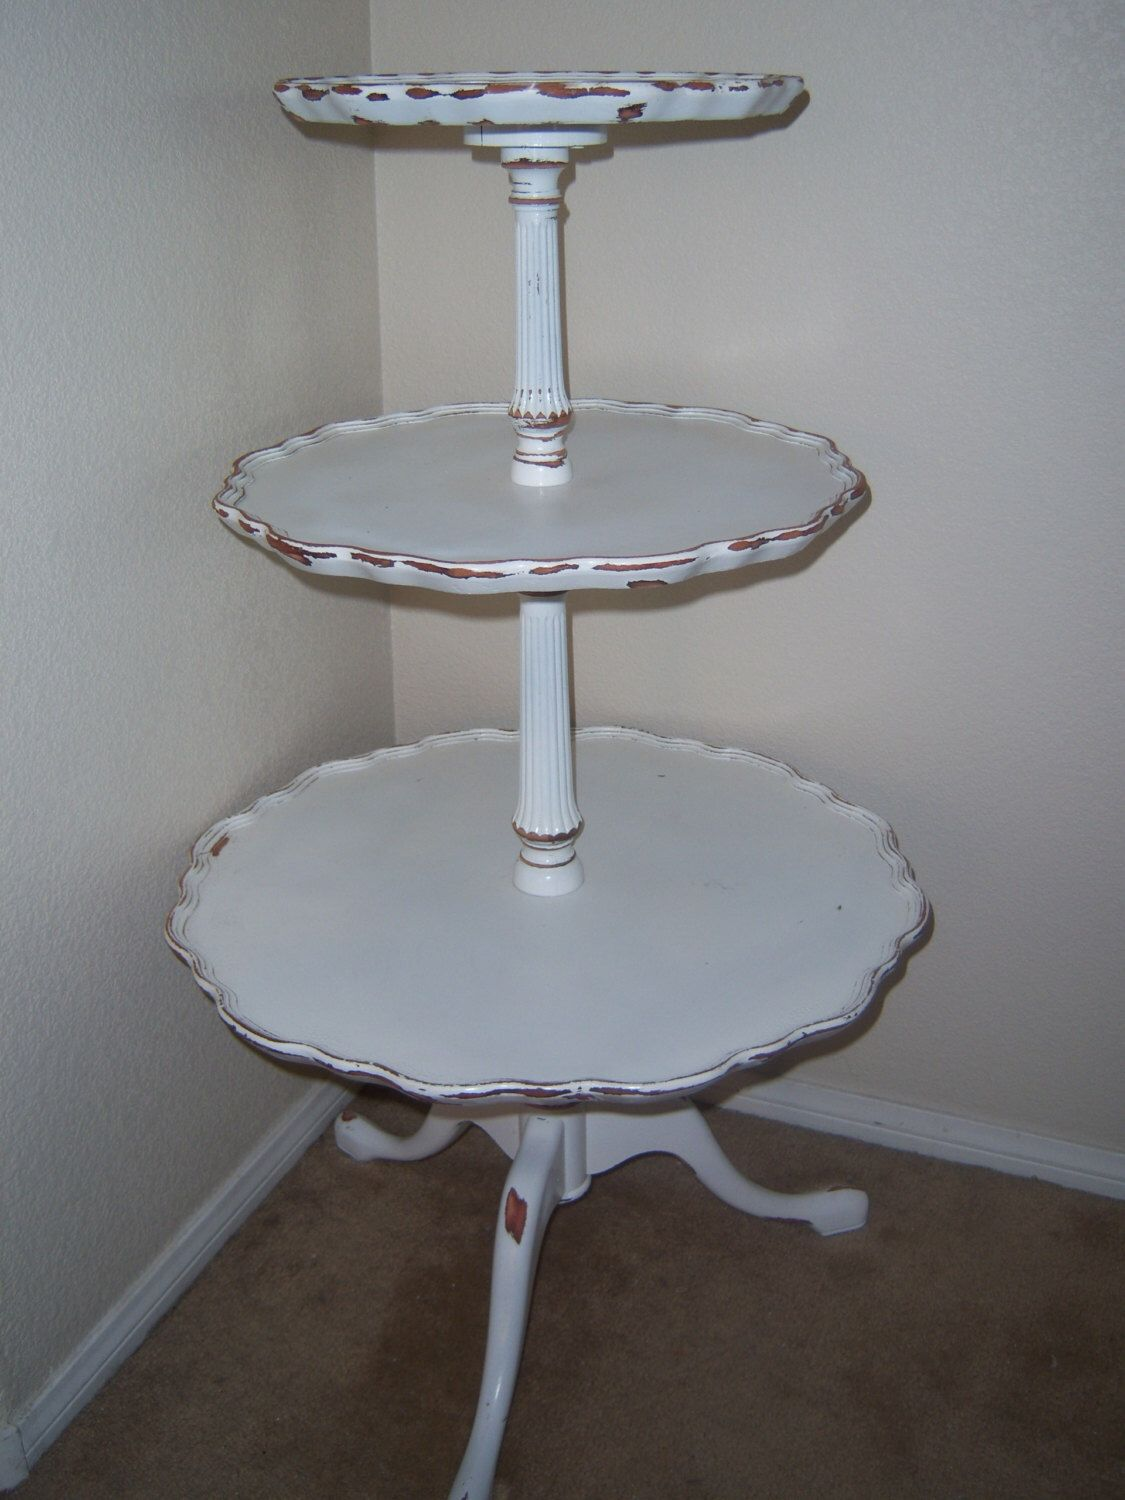 Antique 3 Tier Table Sabby Chic Three Tier Table by MakeMeShabby on Etsy https://www.etsy.com/listing/209169681/antique-3-tier-table-sabby-chic-three